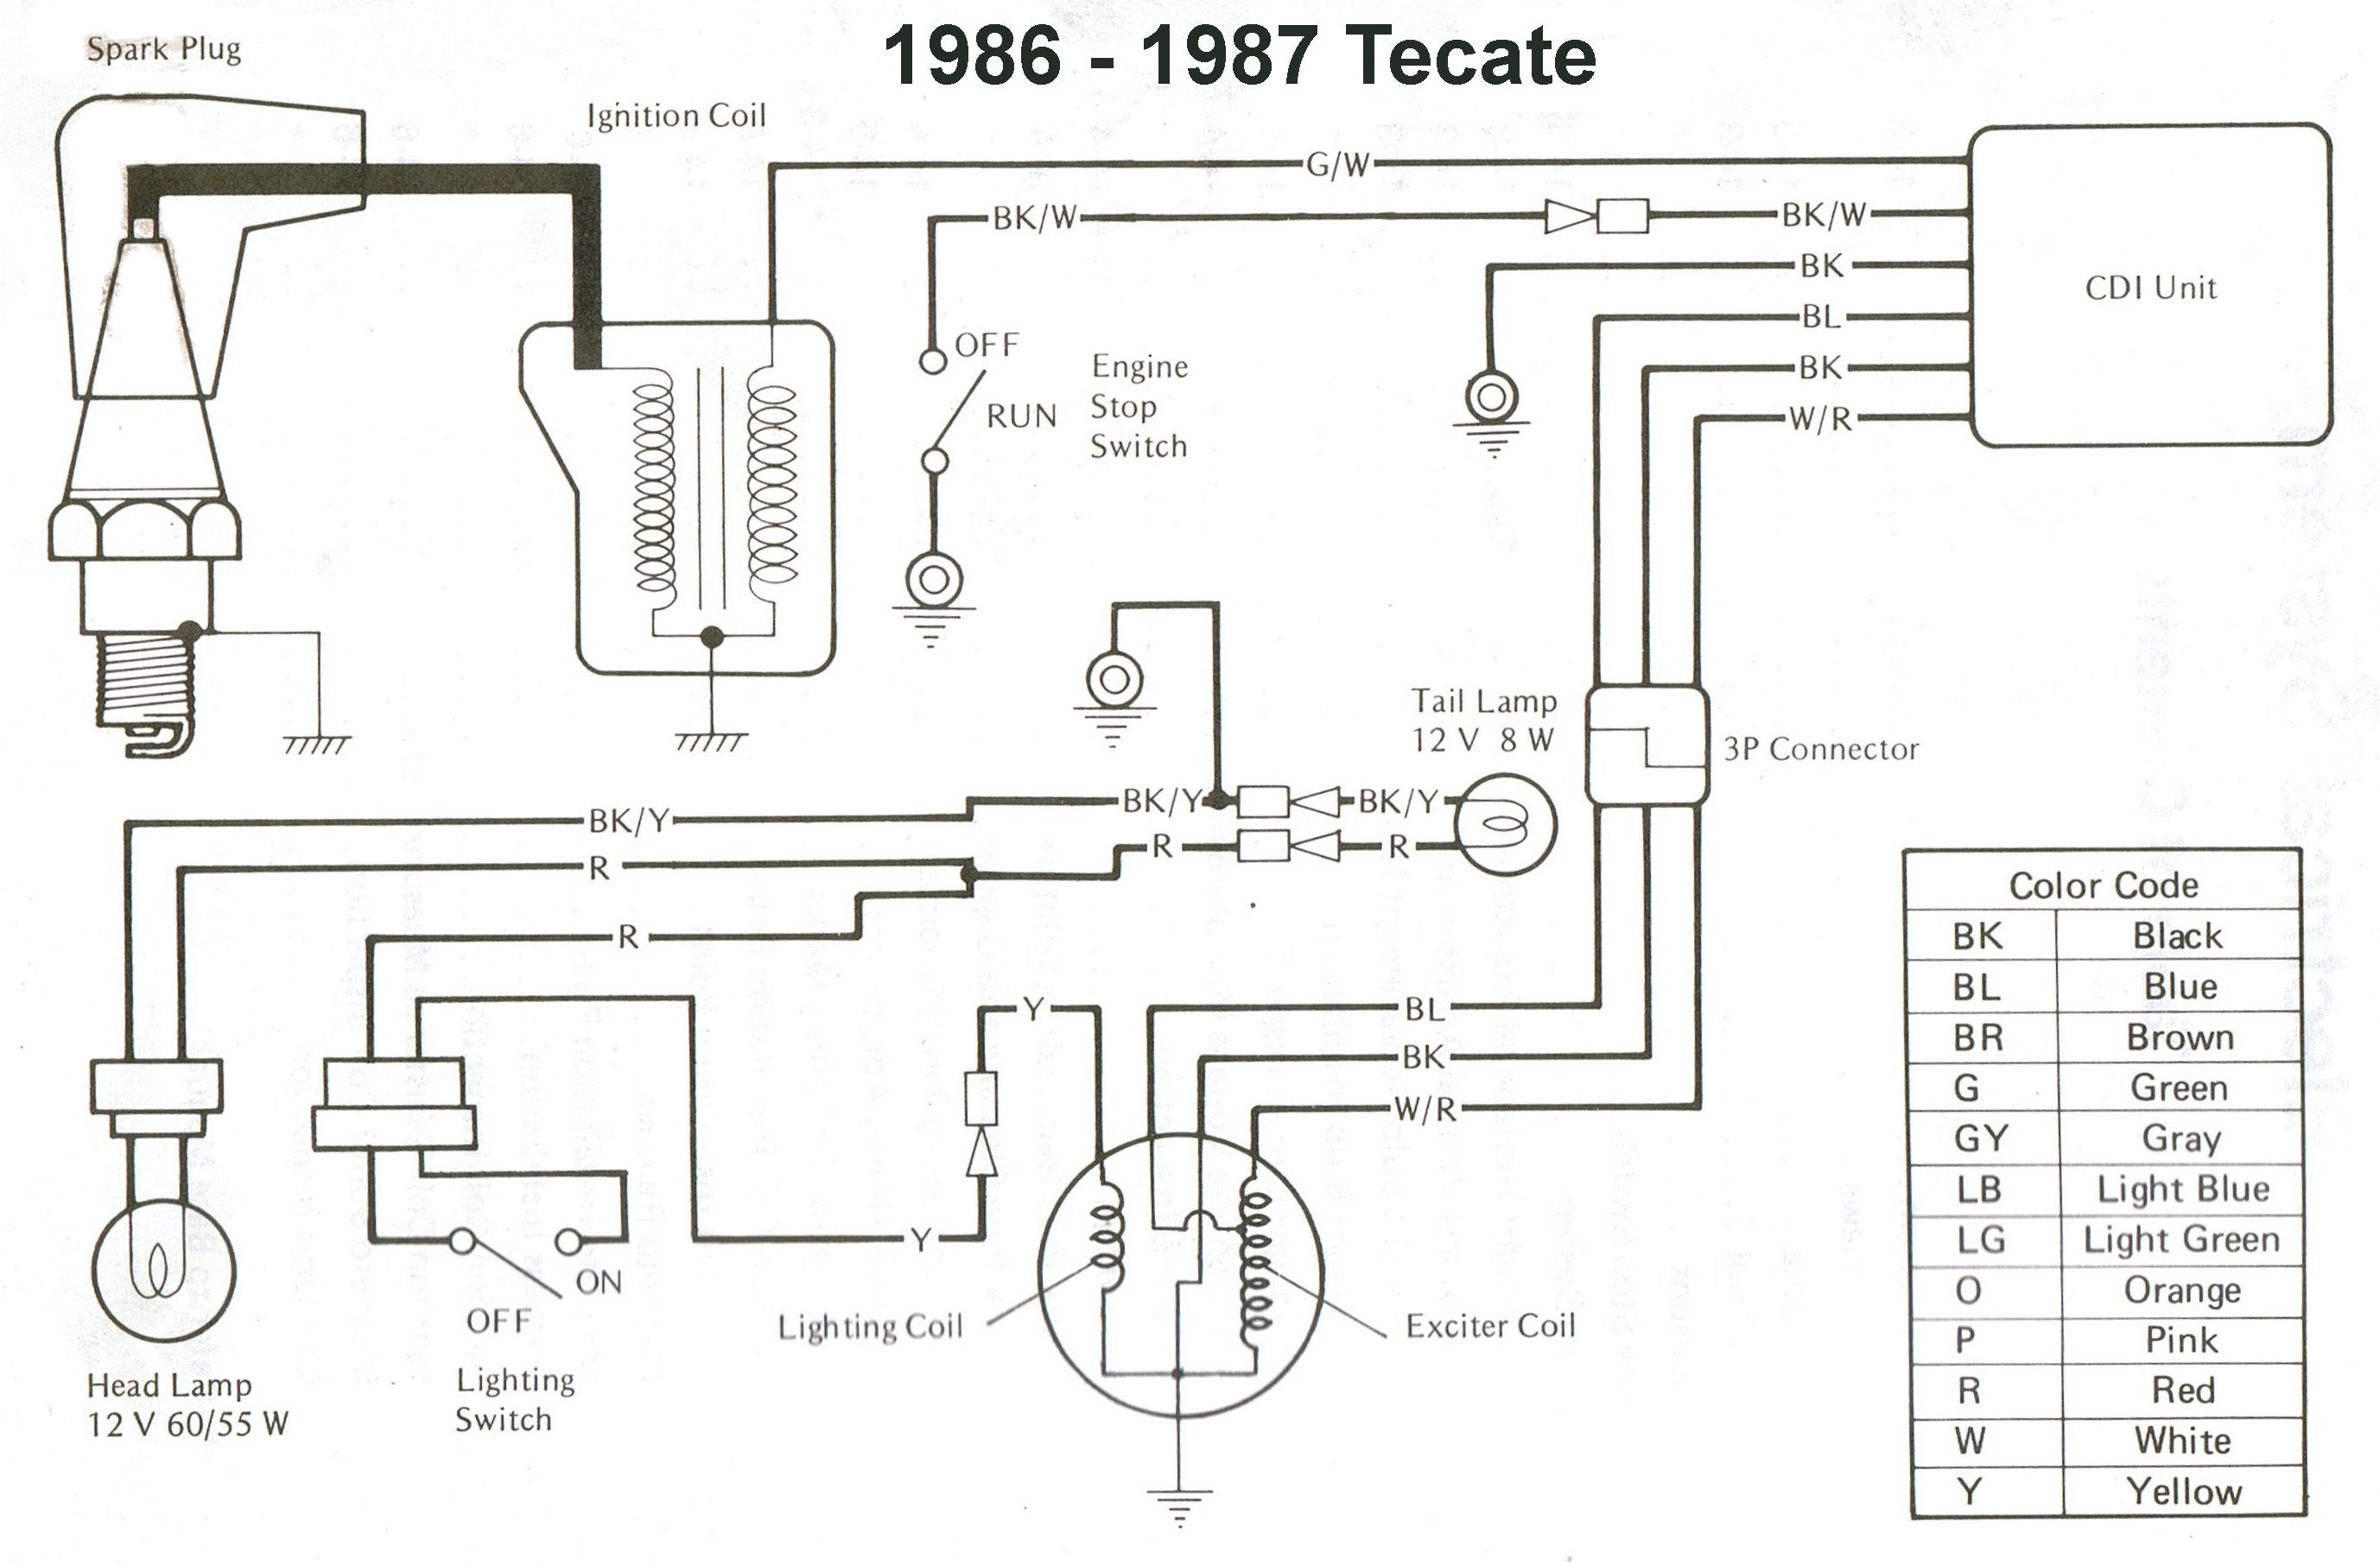 Kx 250 Engine Diagram 1981 Rm 250 Wire Diagram Data Schematics Wiring Diagram • Of Kx 250 Engine Diagram